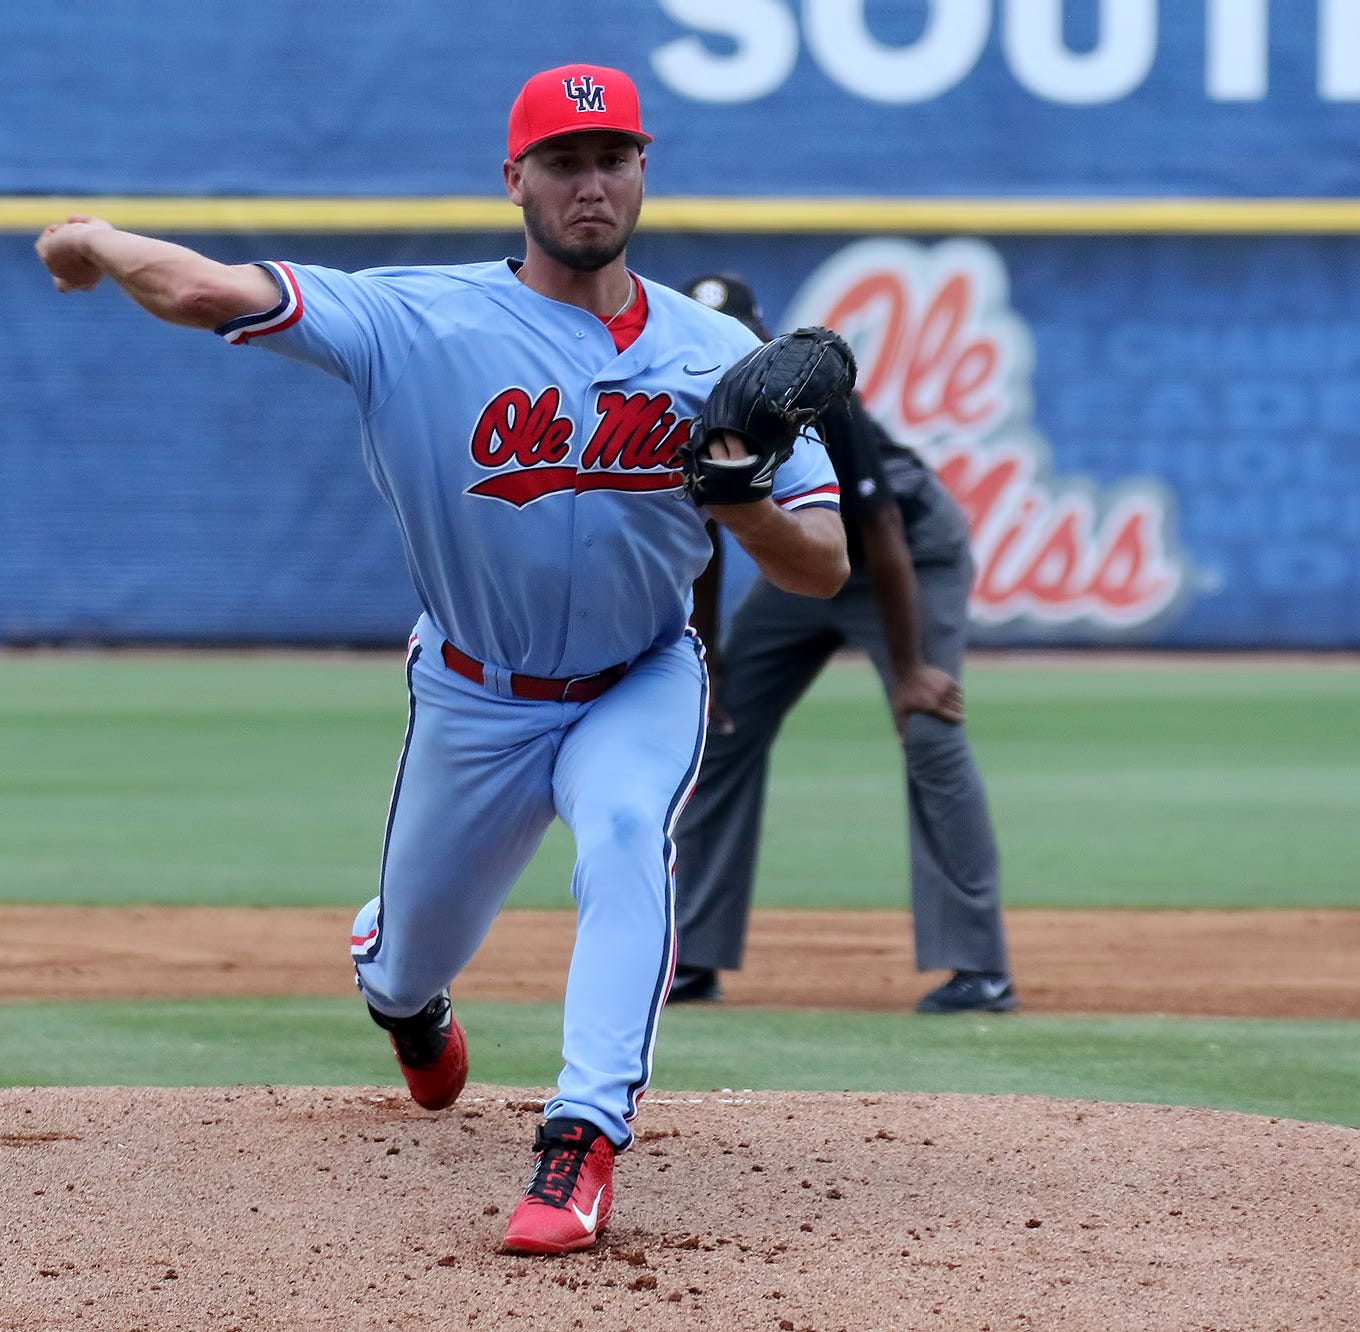 Stellar pitching performance powers Ole Miss baseball to SEC Tournament win over Missouri